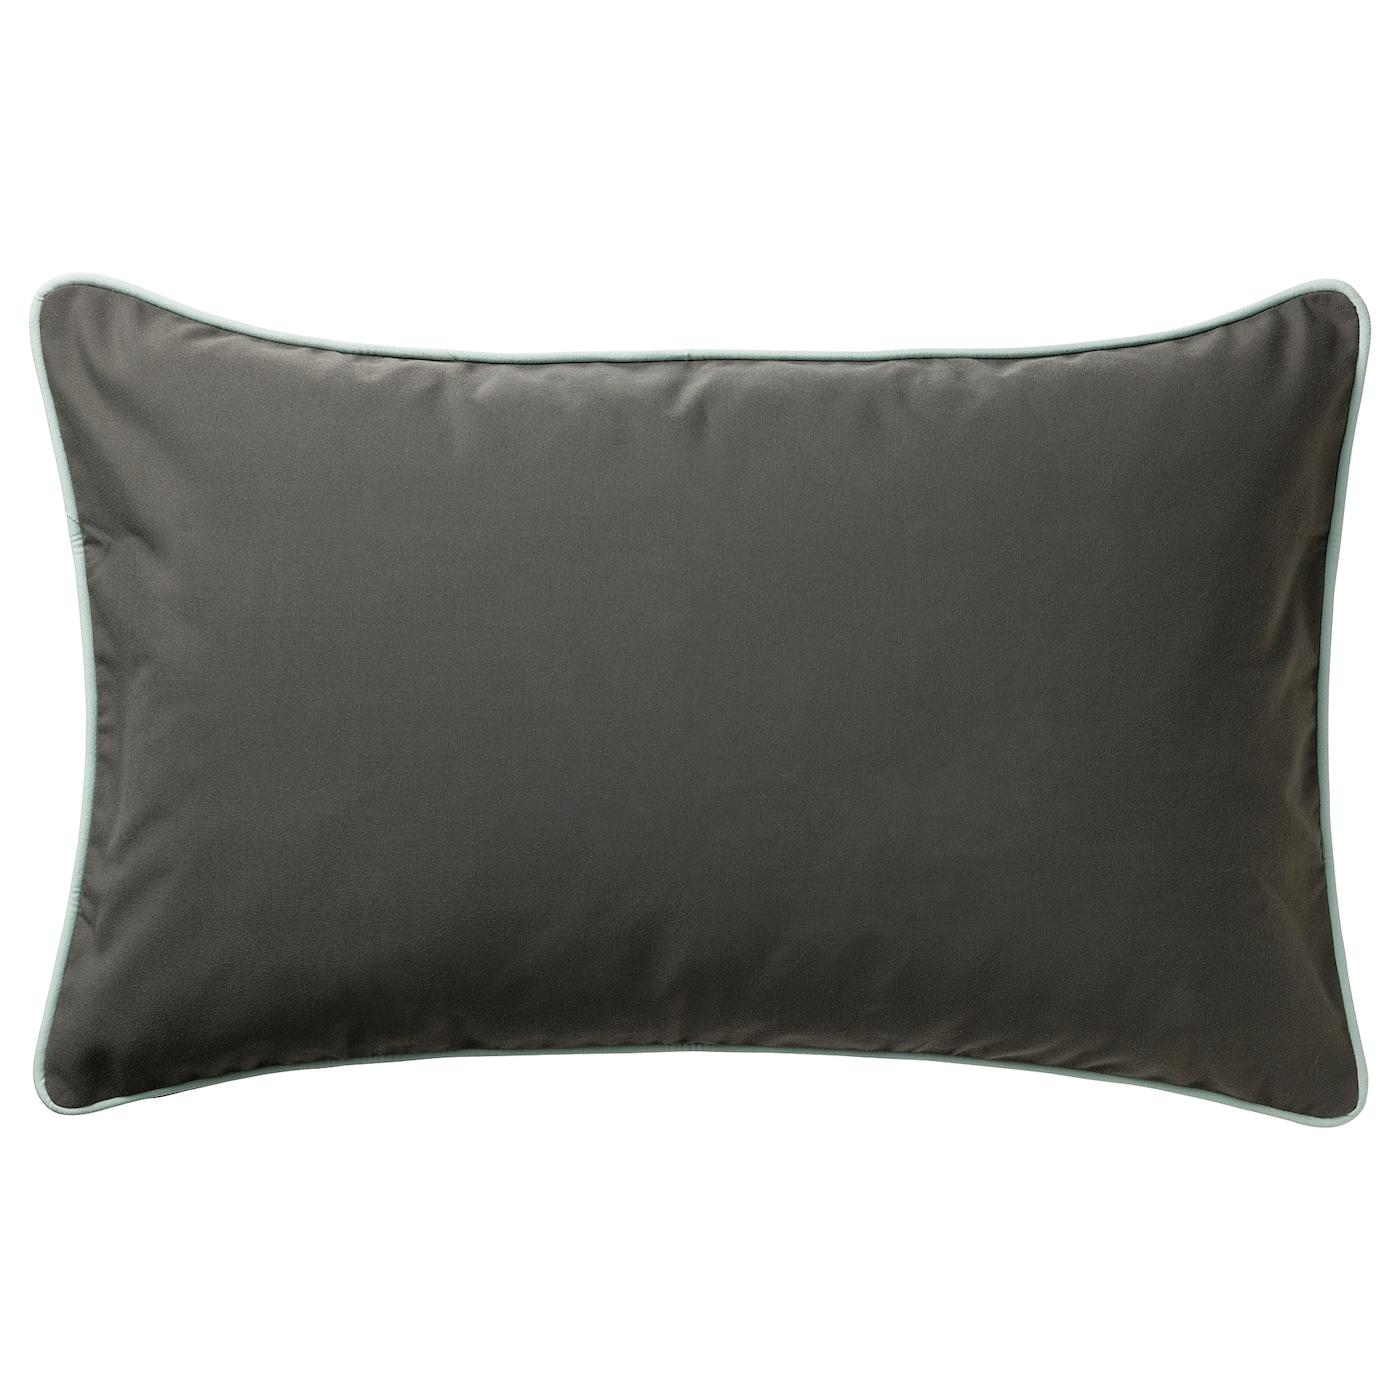 IKEA GULLINGEN cushion cover The colour stays fresh for longer as the fabric is fade resistant.